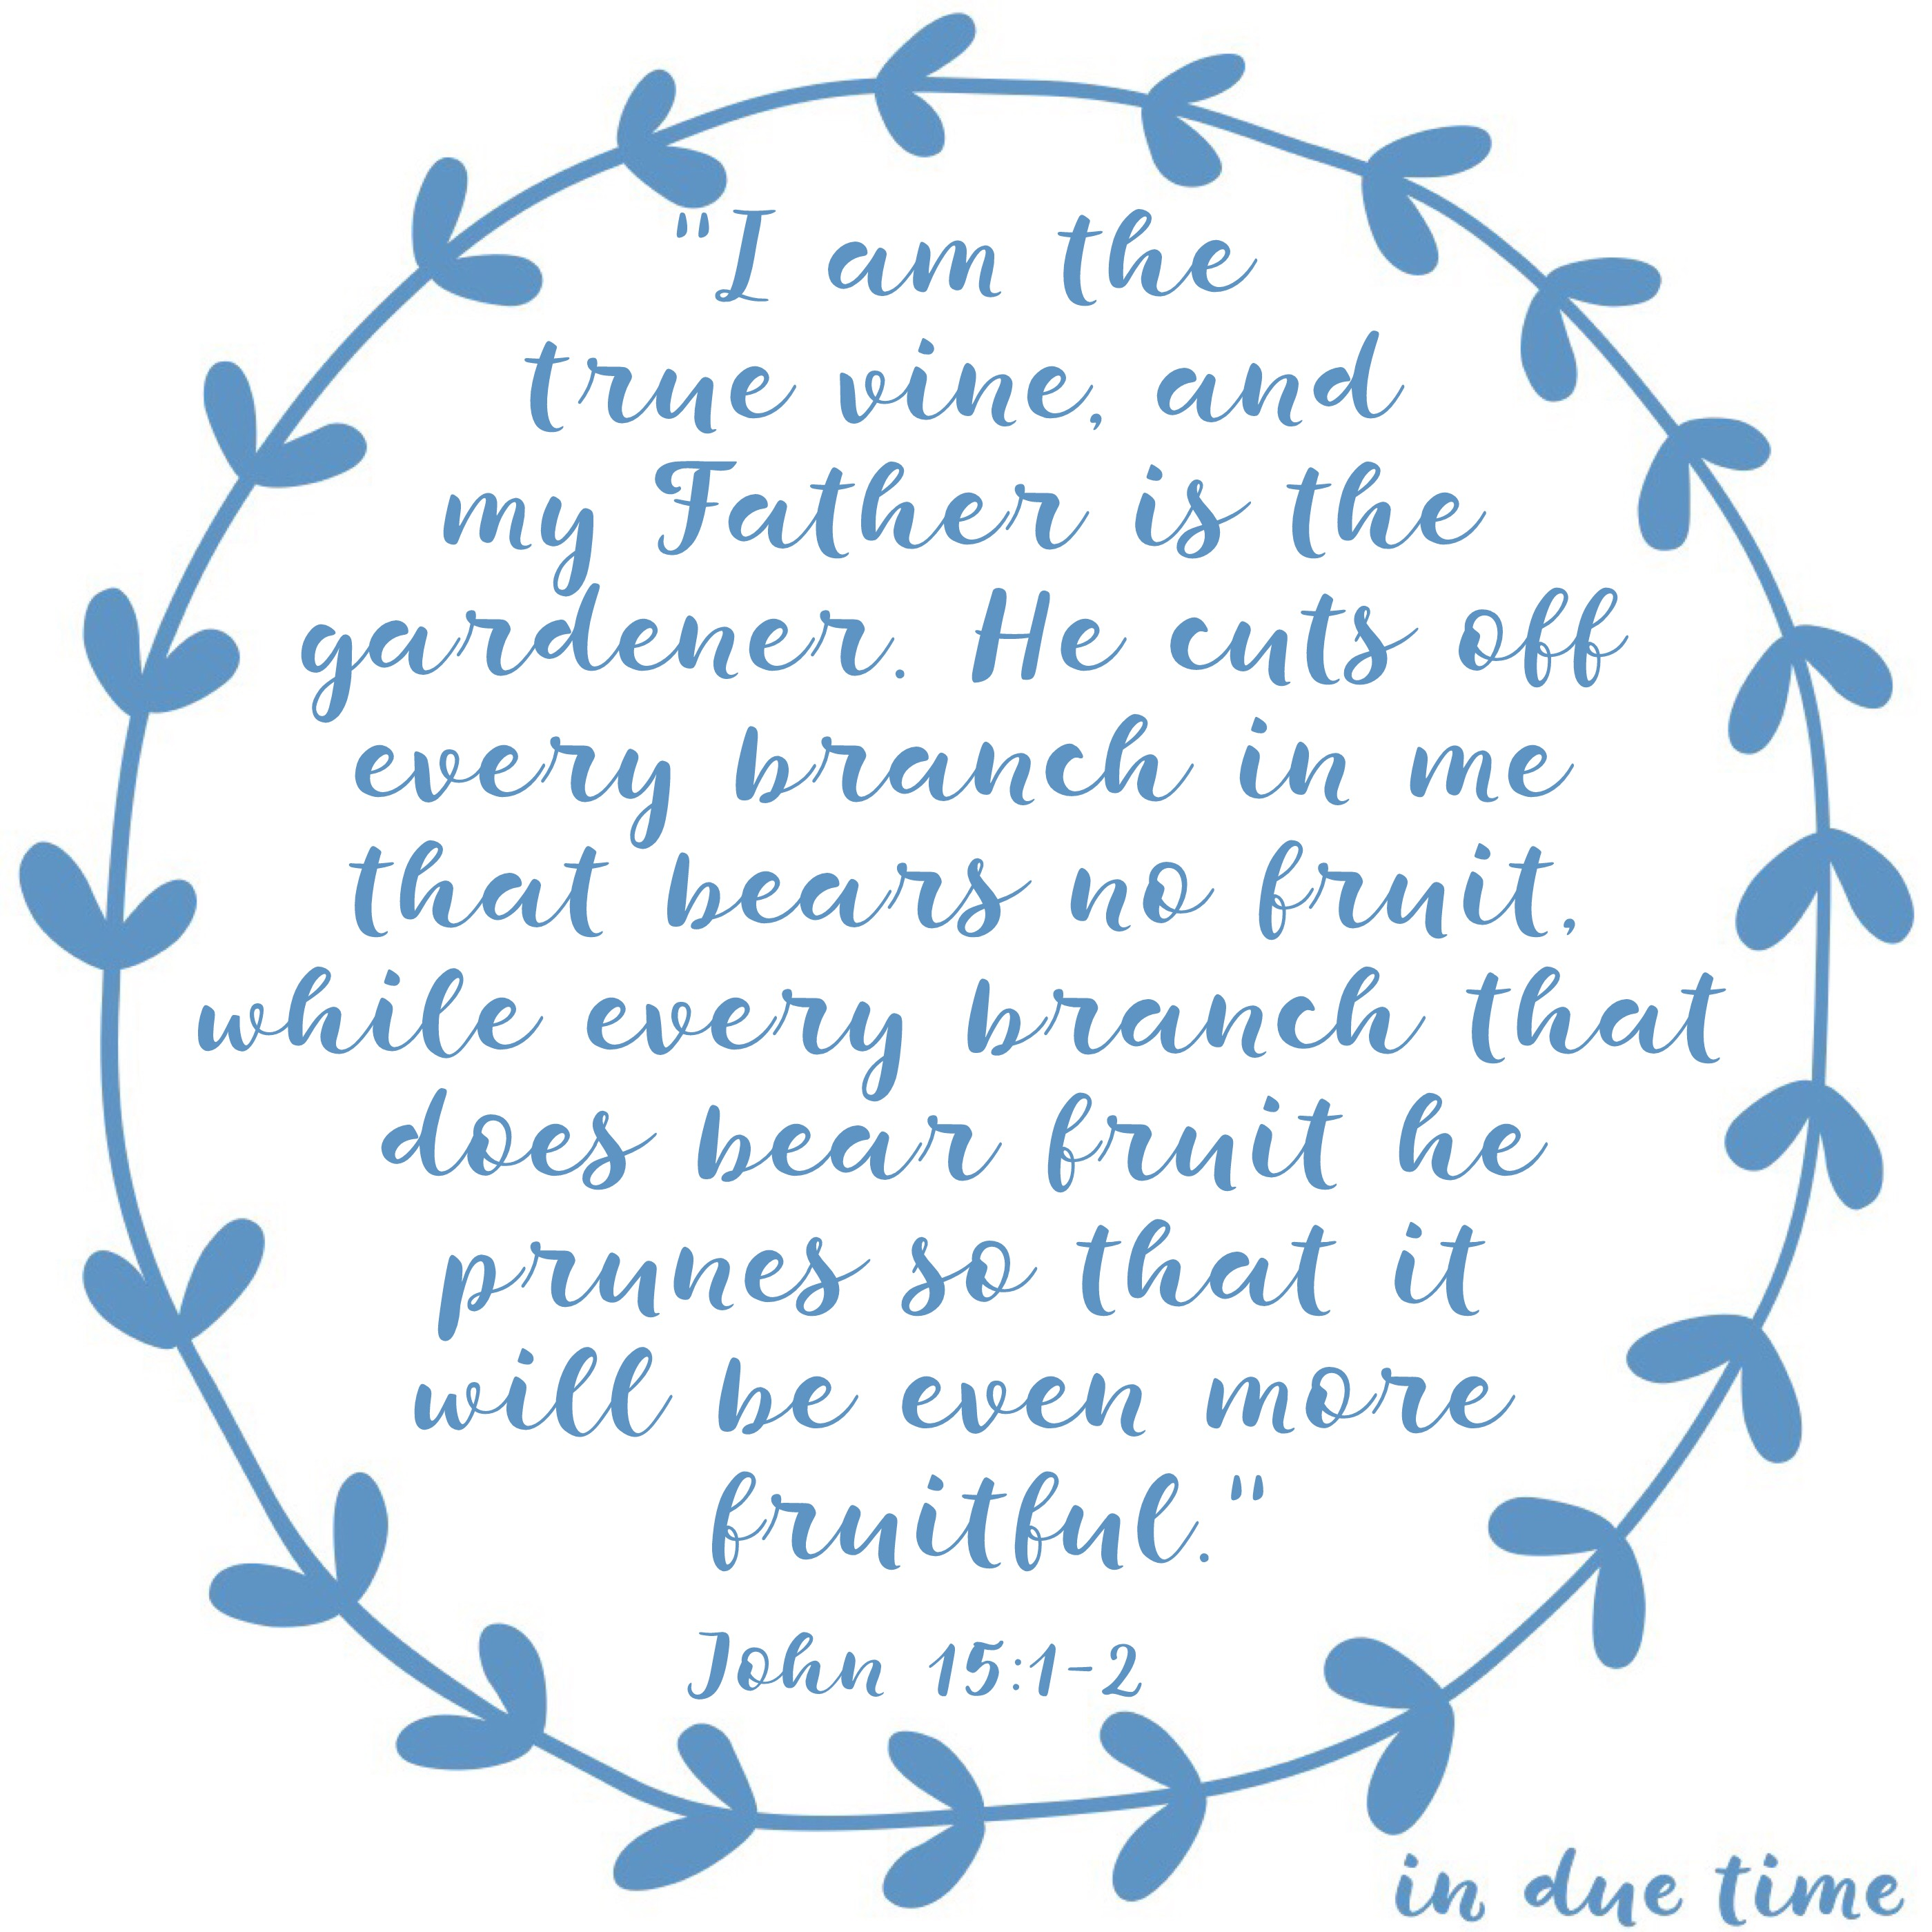 I am the vine - in due time blog